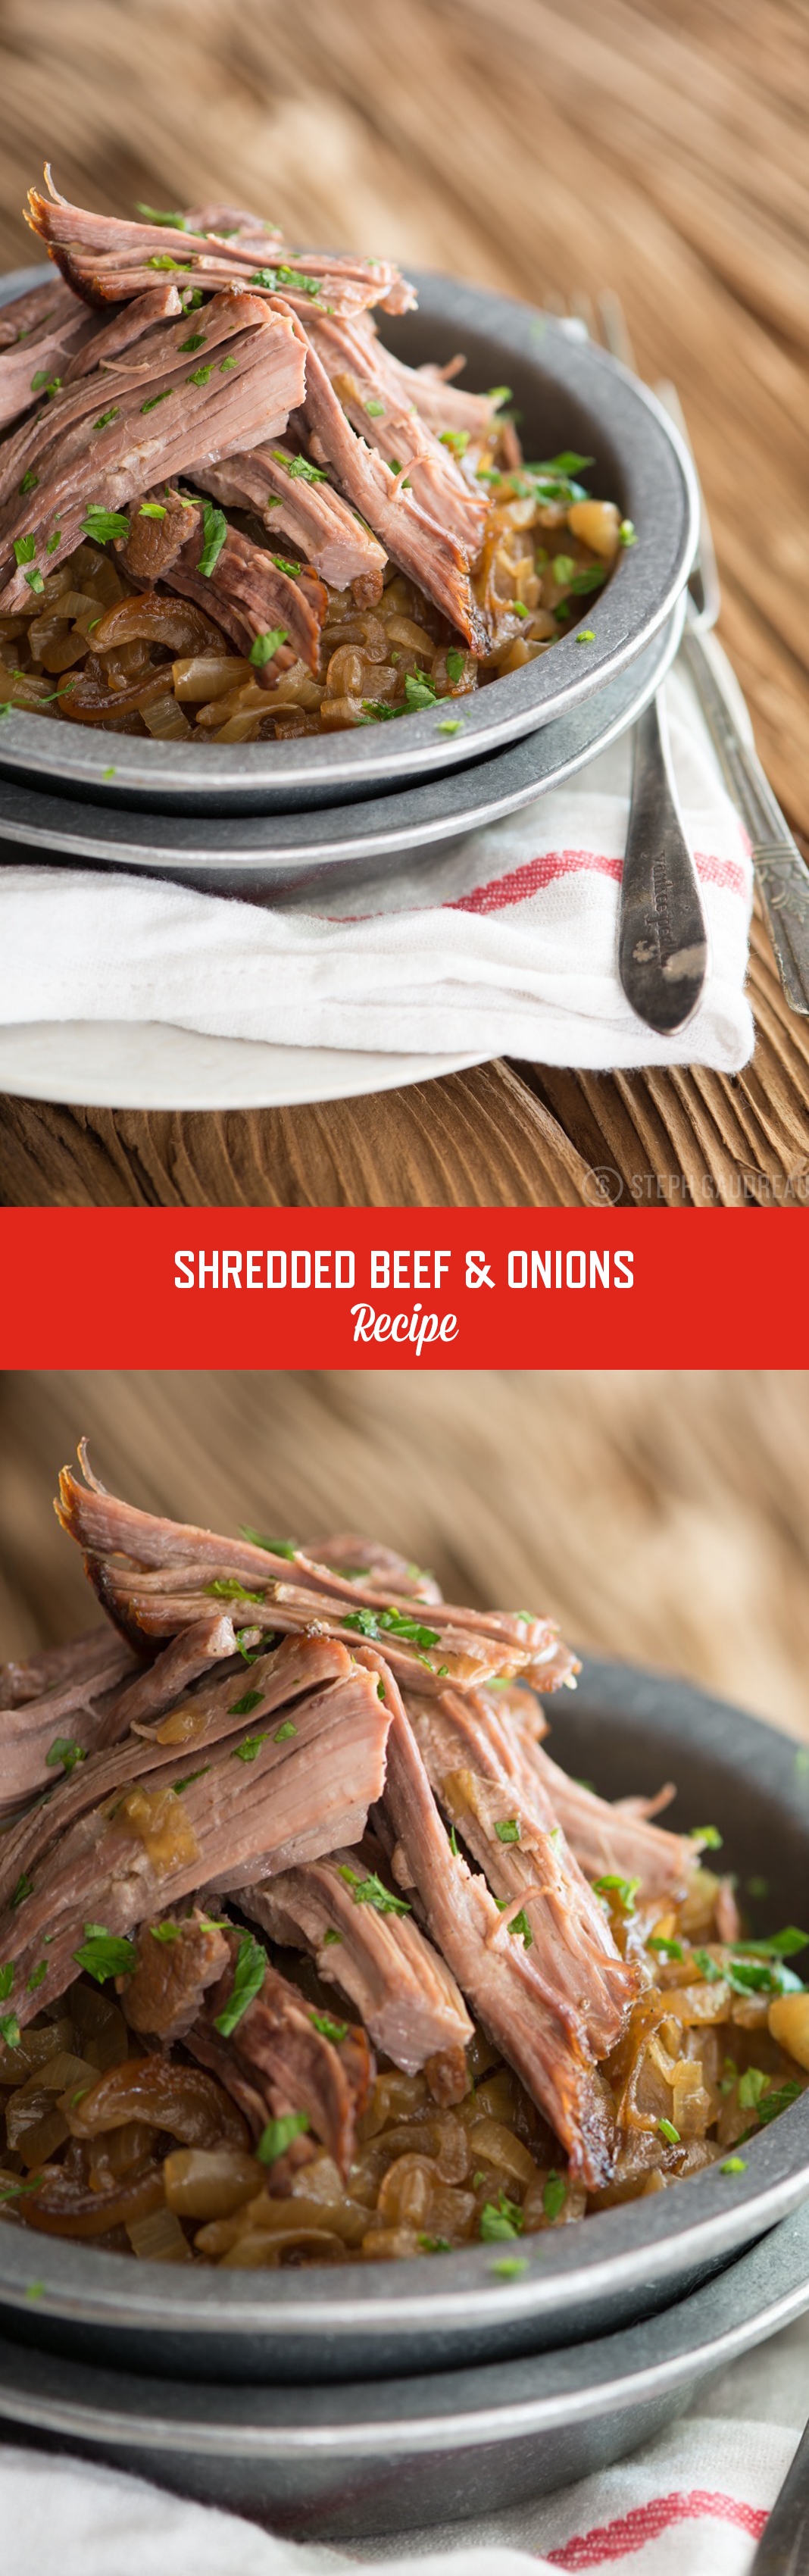 Shredded Beef & Onions Recipe | StupidEasyPaleo.com